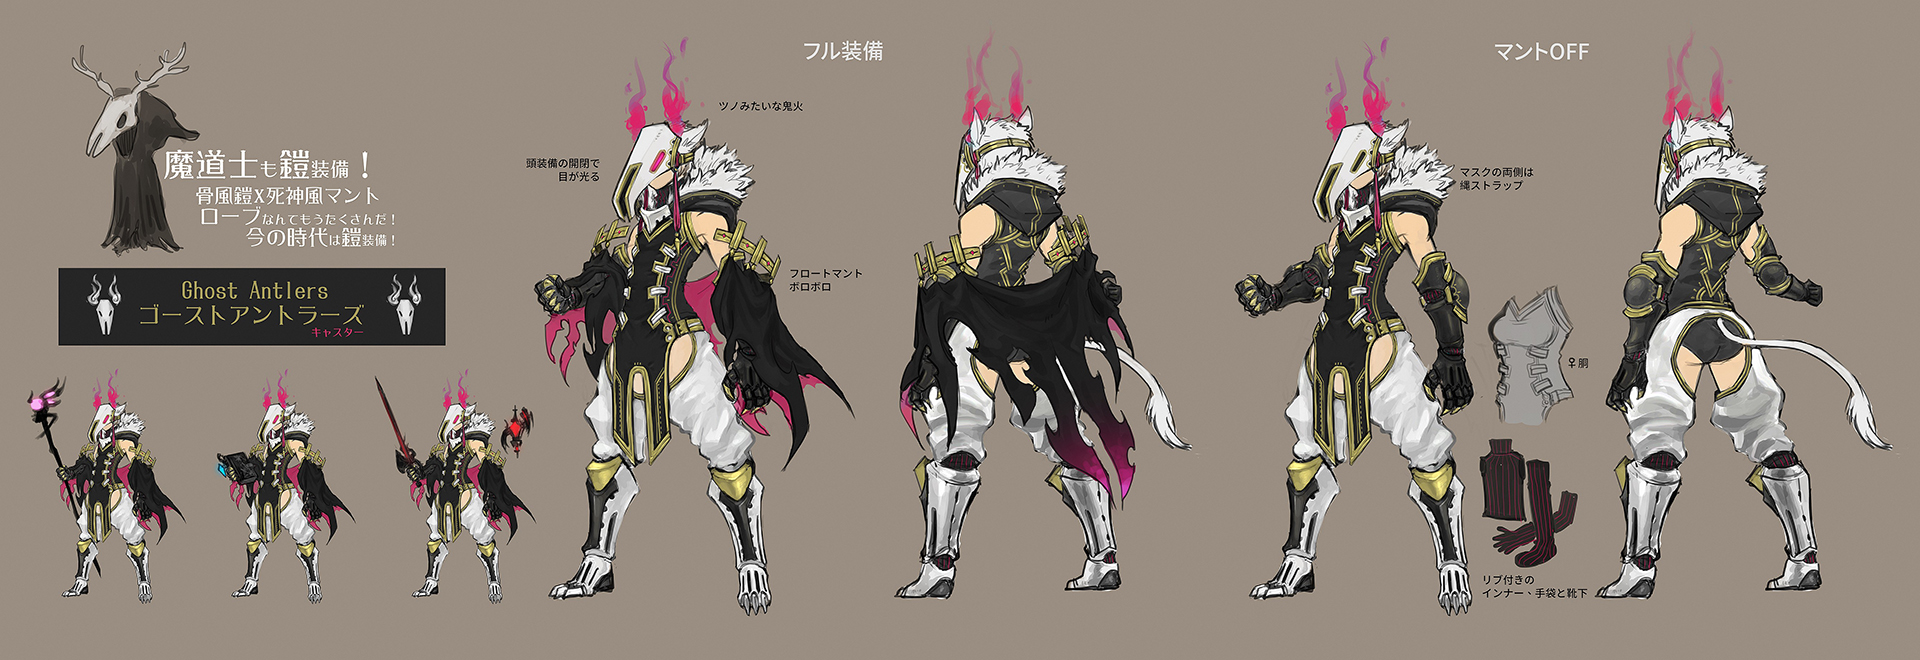 Announcing The Winners Of The Gear Design Contest Ranged Magic - Hairstyle design contest ffxiv